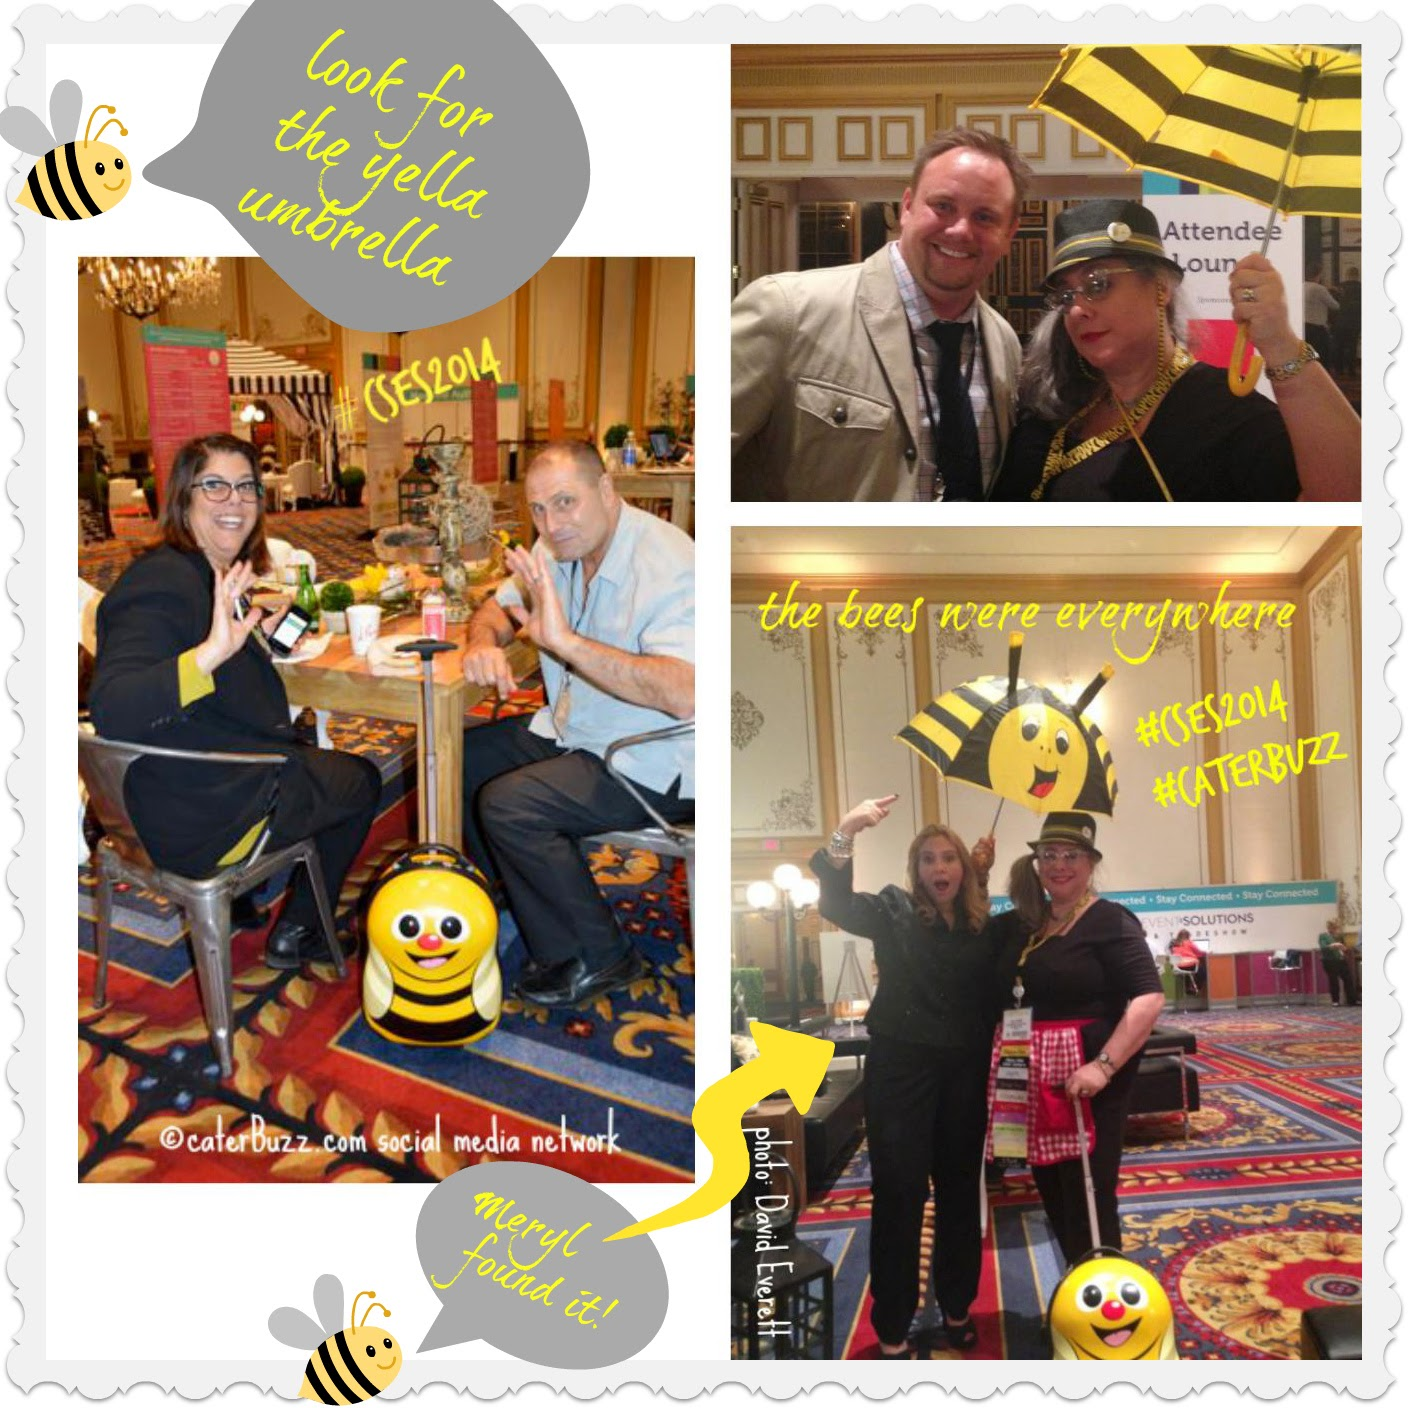 © caterBuzz.com social media network - Meryl Snow and Lisa Teiger under the Yella Umbrella with Roll-e-bee #CSES2014 Catersource Convention in Las Vegas